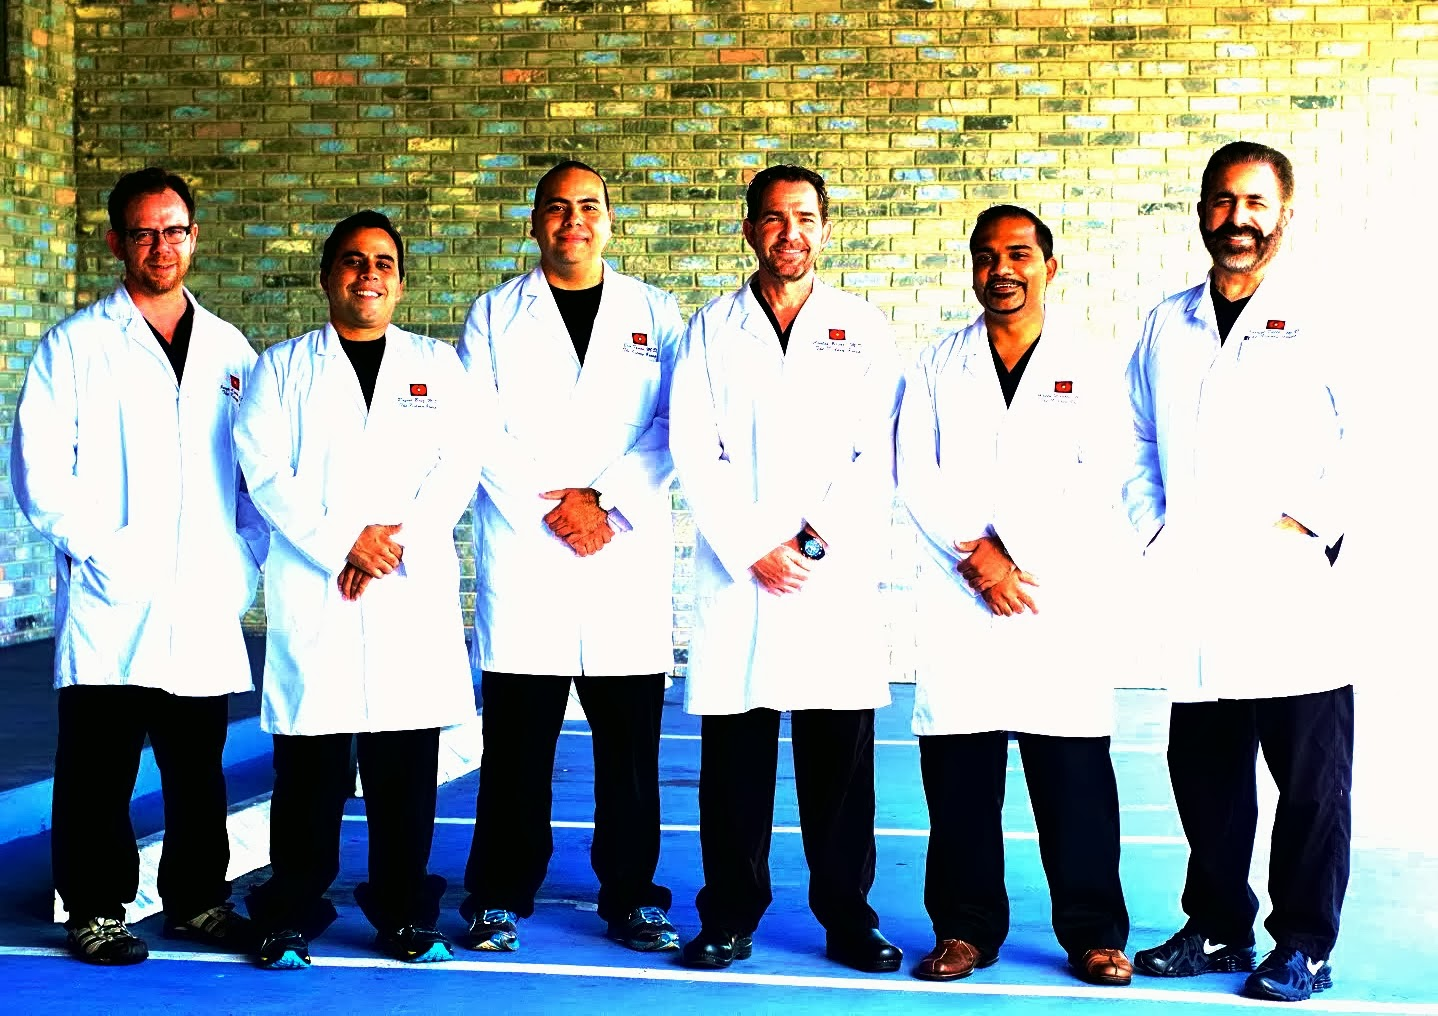 THE DOCTORS OF THE KIDNEY GROUP